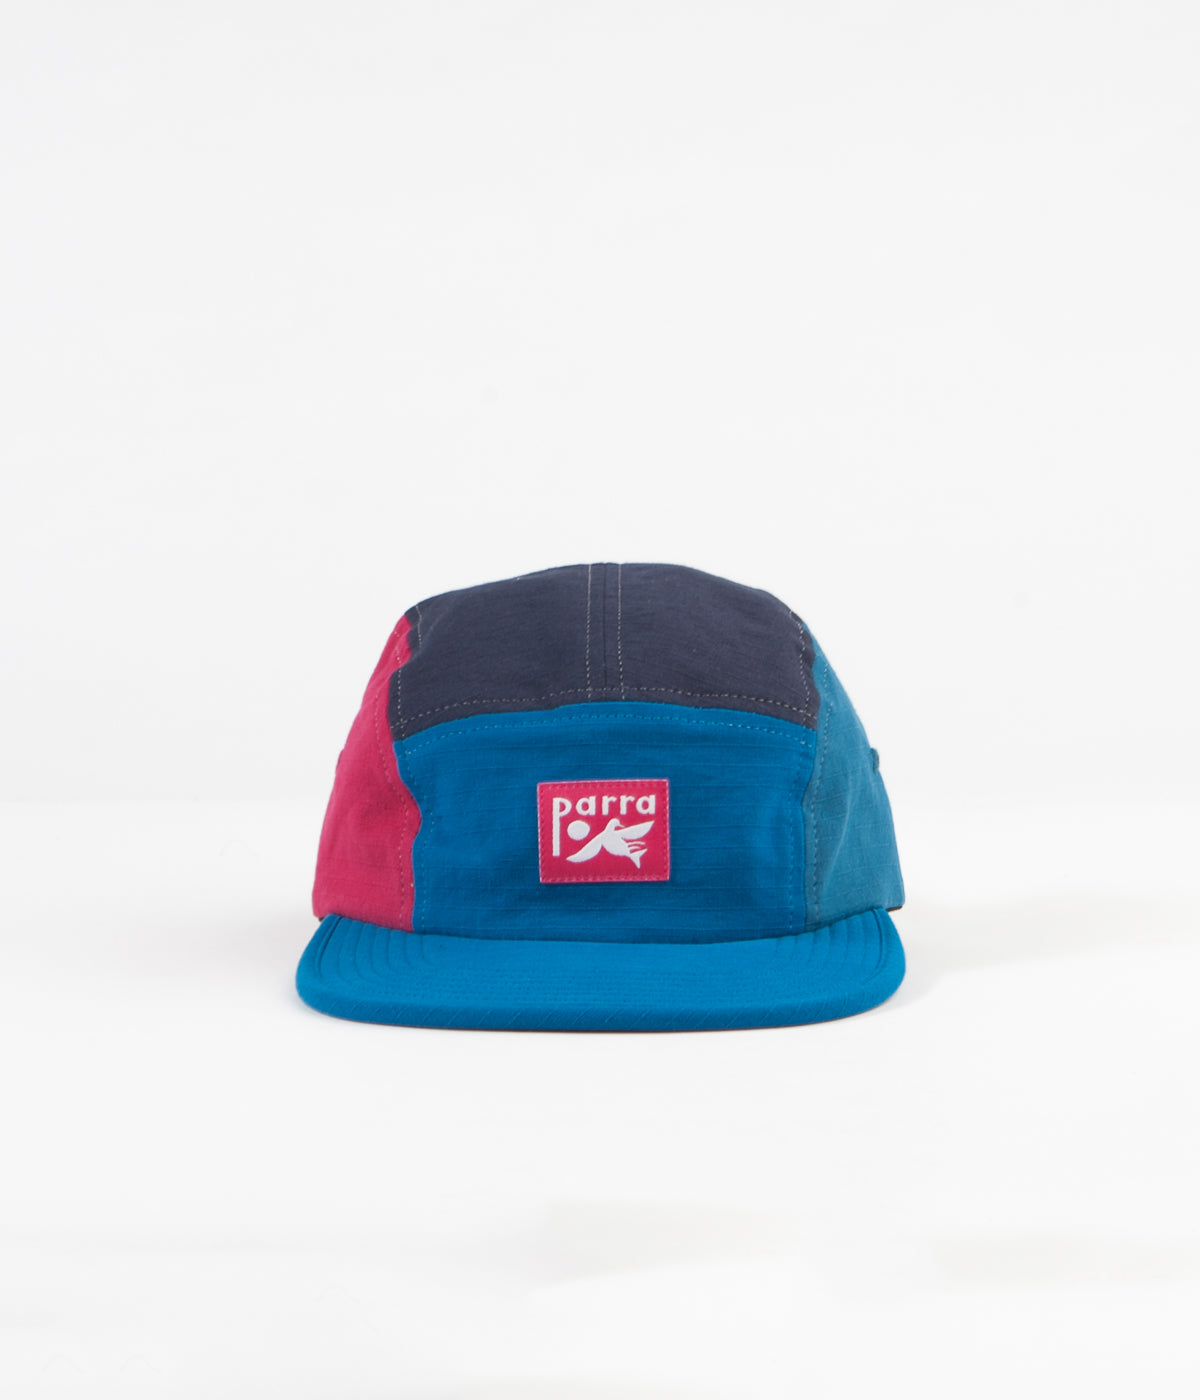 by Parra Bird Dodging Ball 5 Panel Cap - Multicolour